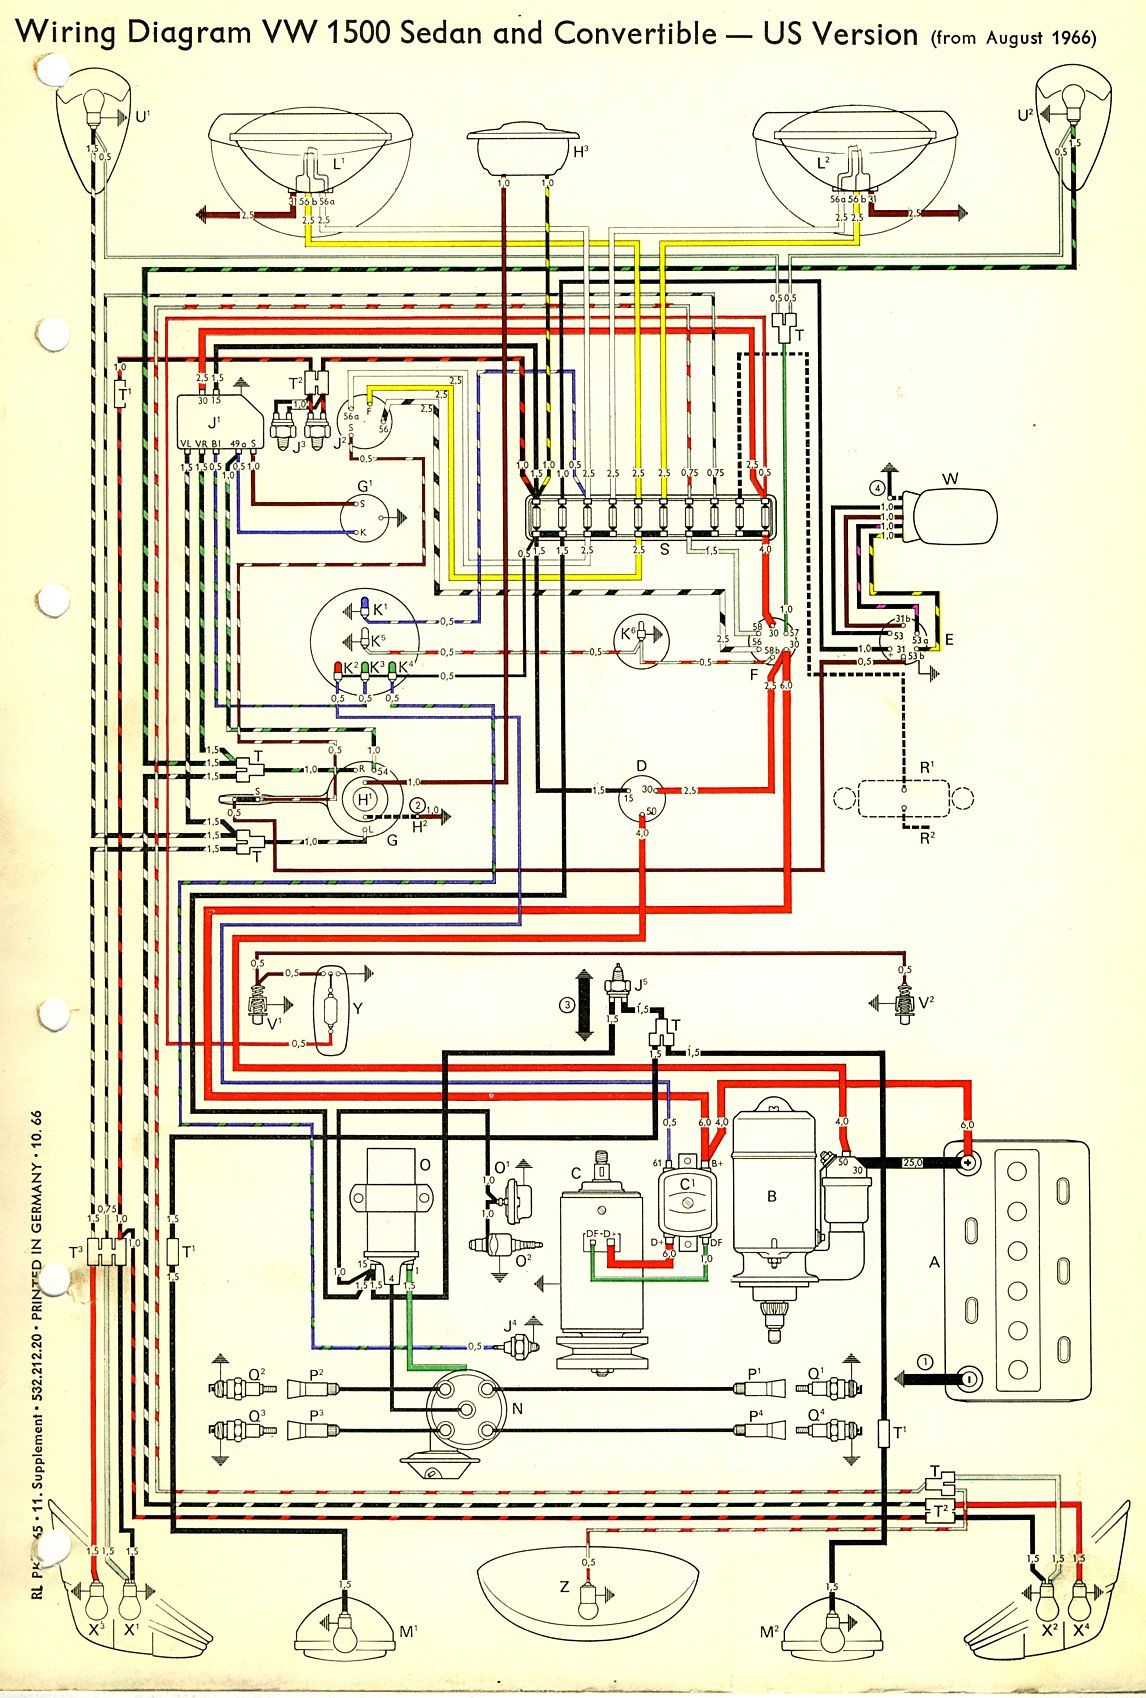 medium resolution of 1967 beetle wiring diagram usa thegoldenbug com